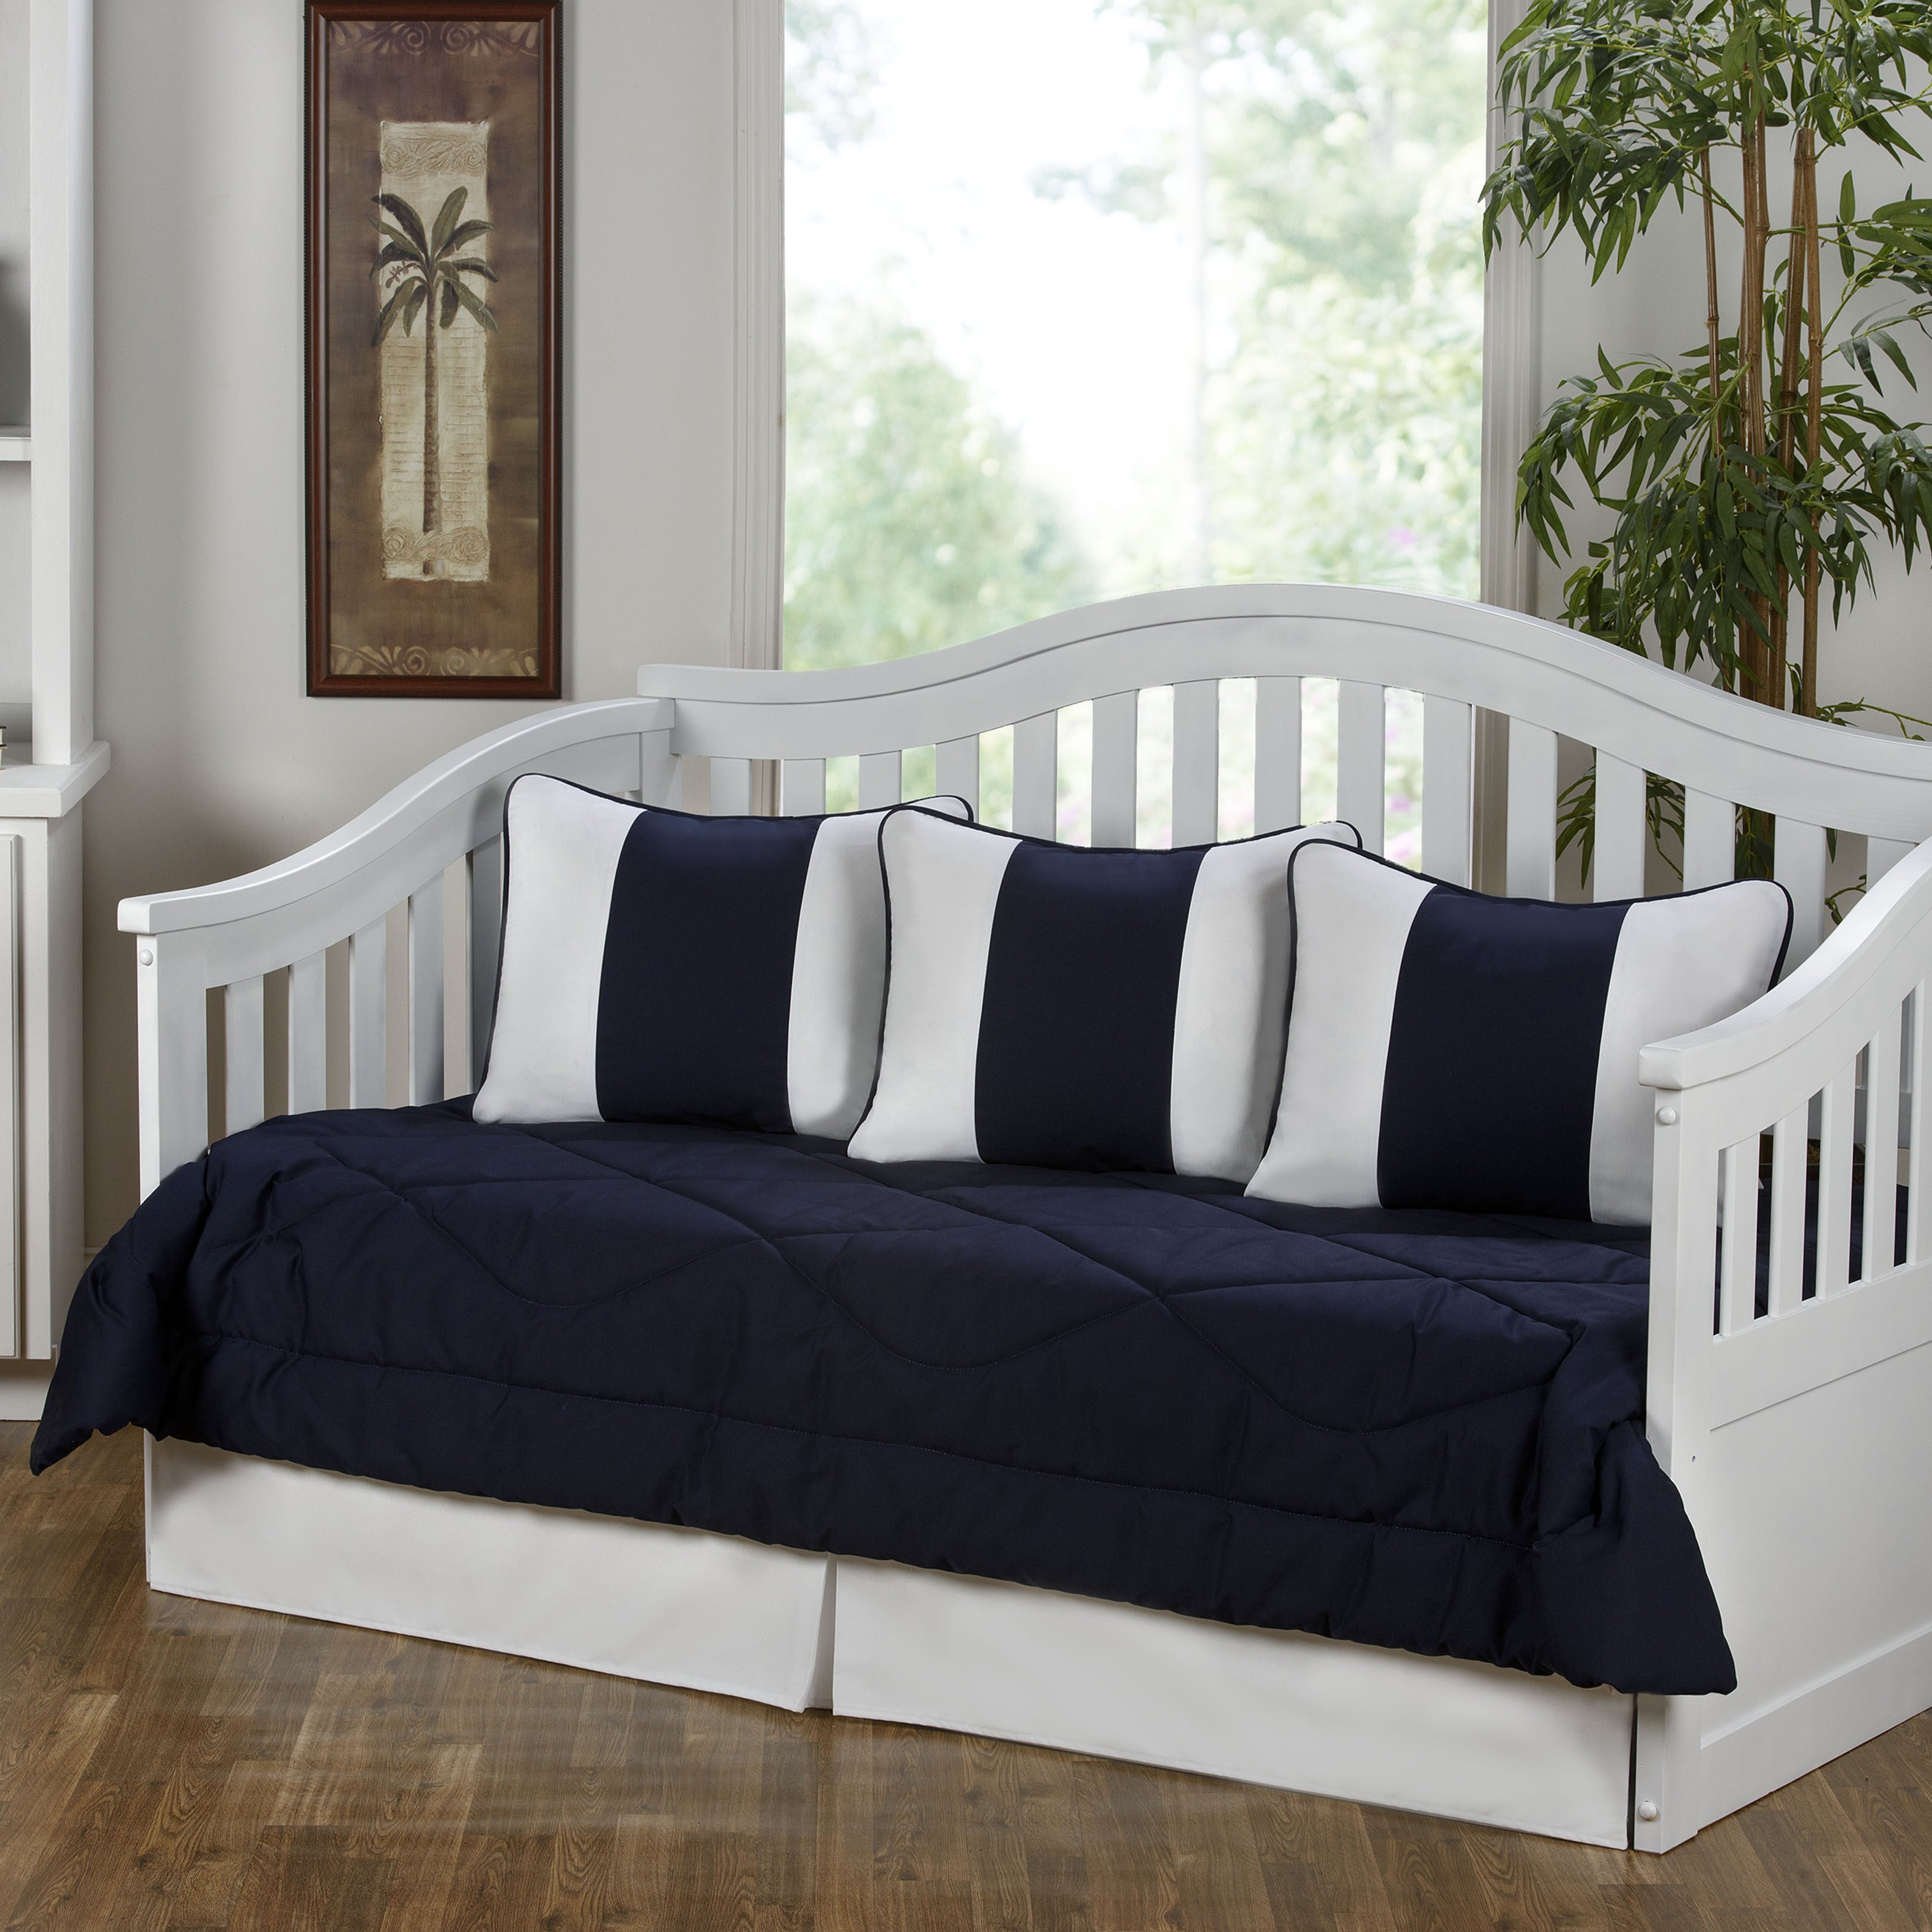 Cabana Navy Blue And White 5 Piece Daybed Set On Sale Overstock 10452938